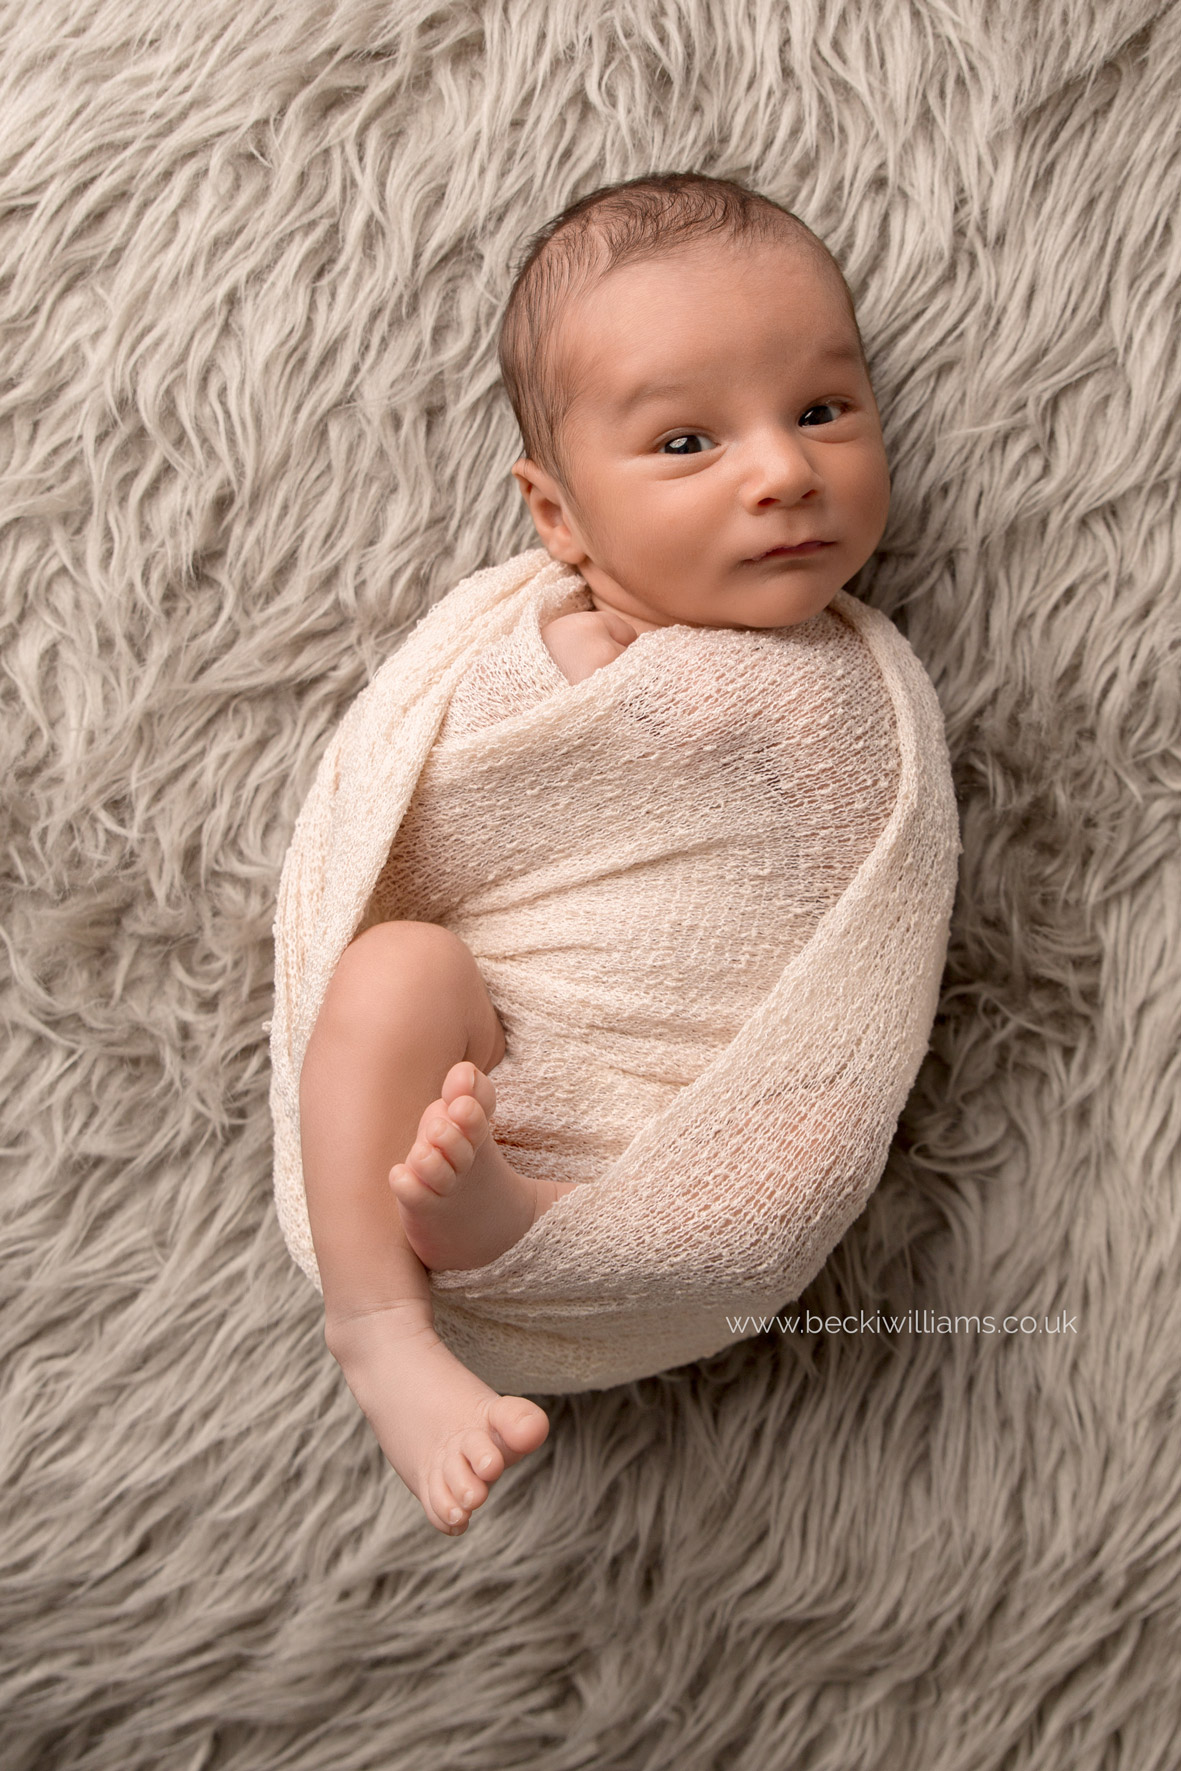 newborn baby boy wrapped in a cream wrap on a furry blanket for his newborn photo shoot in hemel hempstead